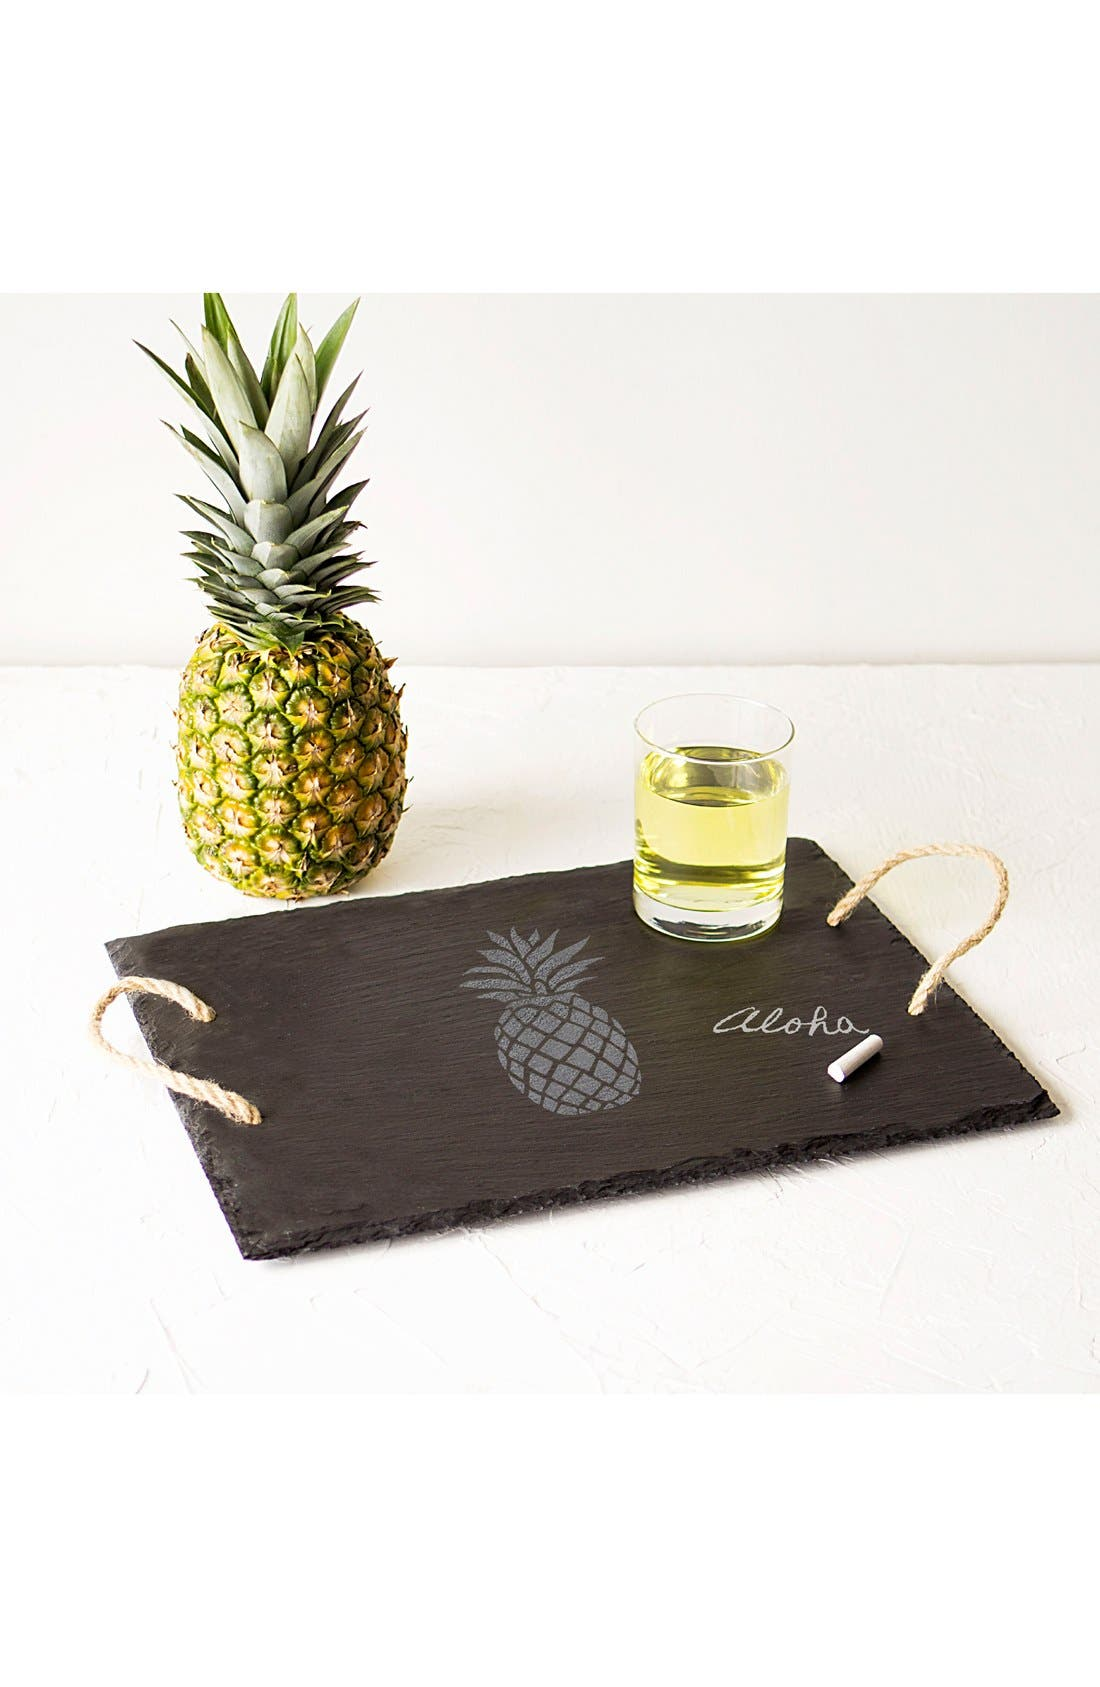 Pineapple Slate Serving Tray,                             Main thumbnail 1, color,                             020